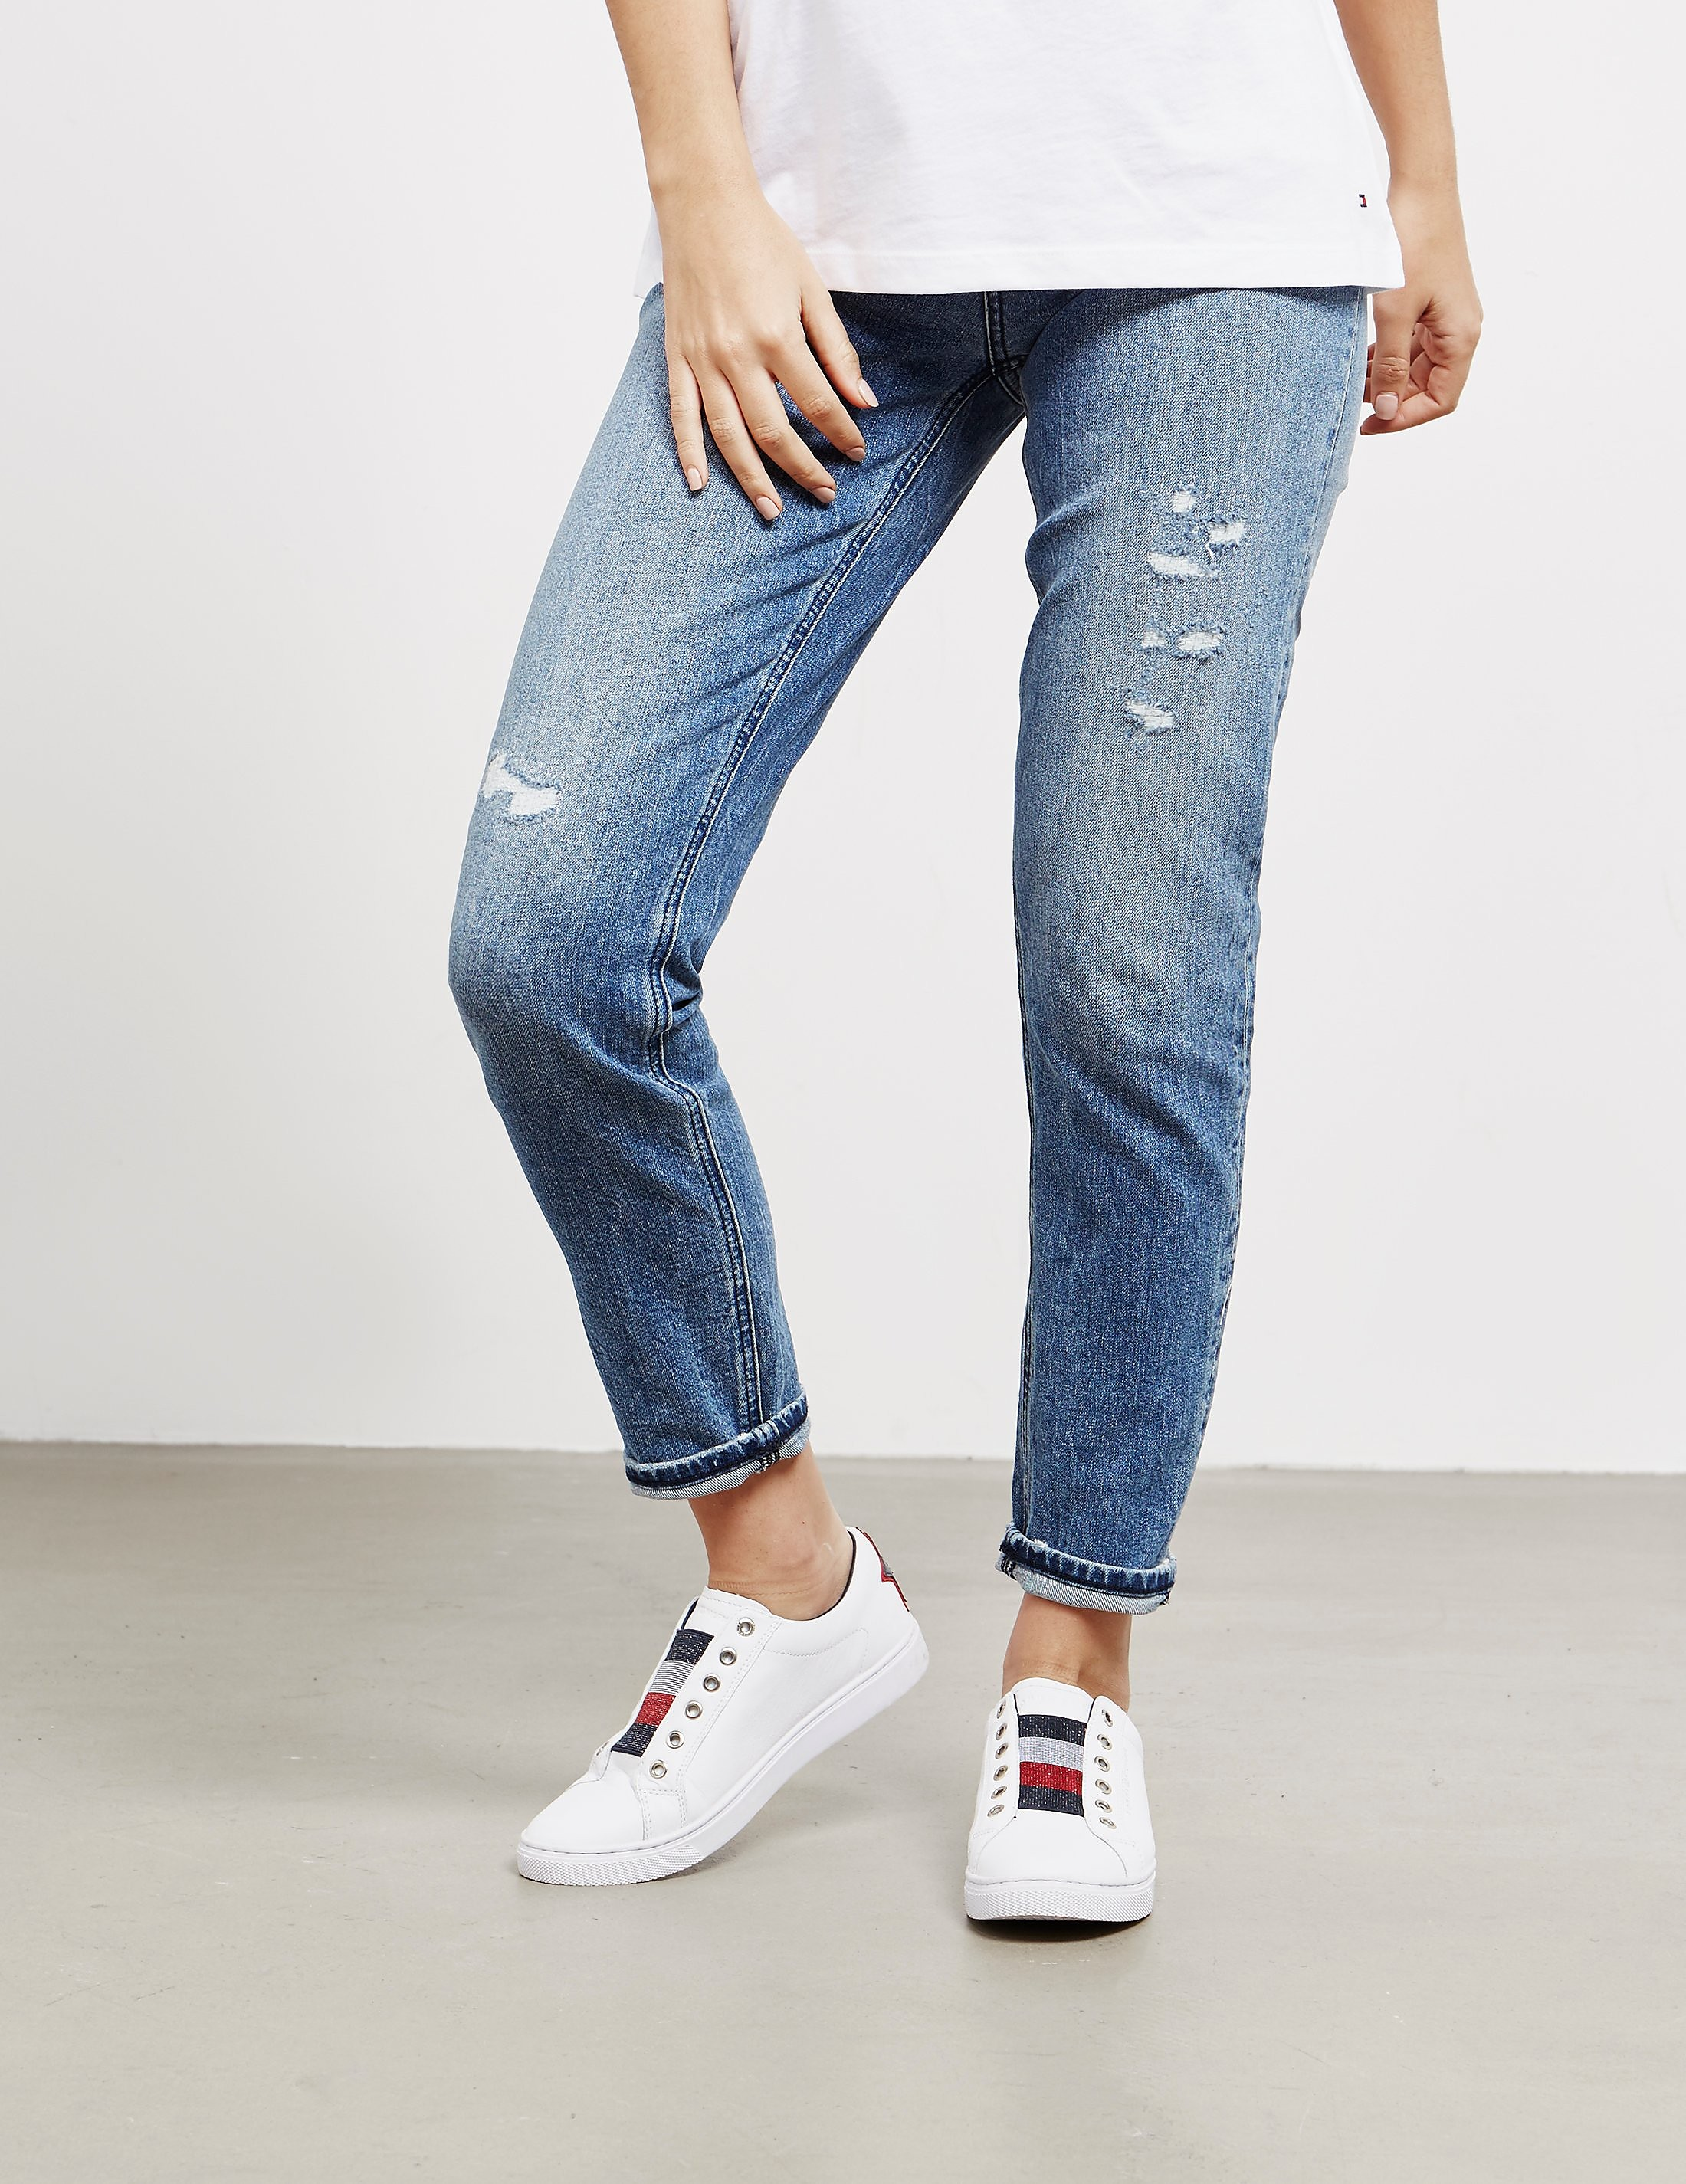 c8b708e9b Womens Tommy Hilfiger Mom Fit Jeans - Online Exclusive Blue, Blue ...